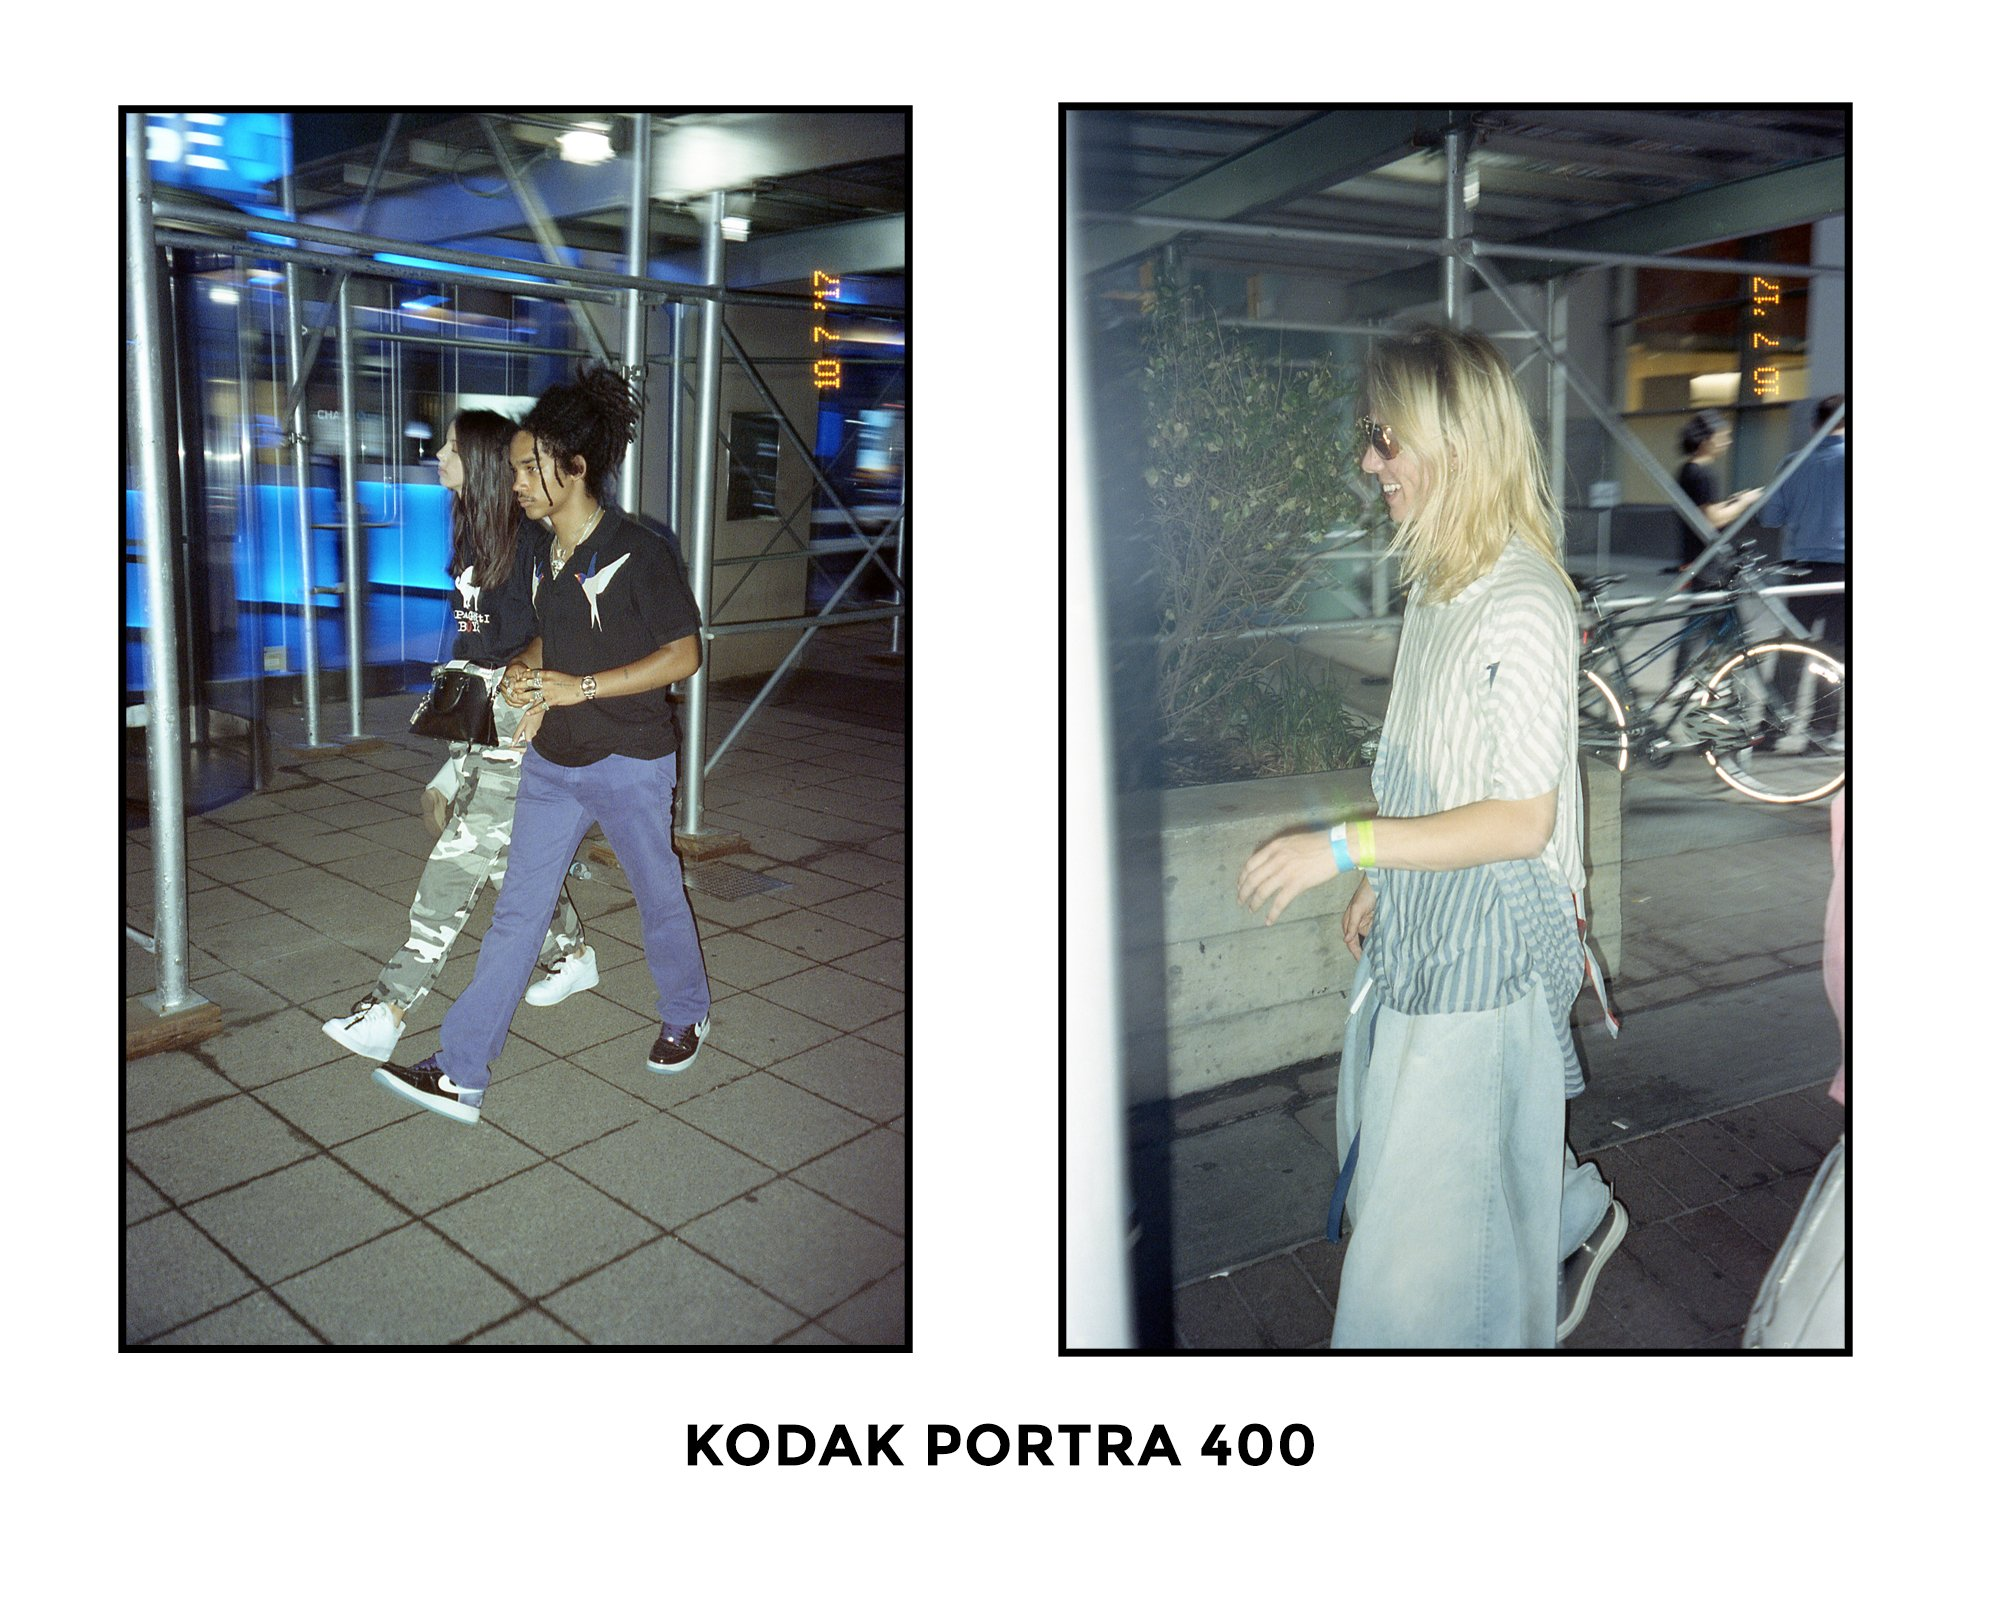 Film Stock Review: Kodak Portra 400 vs  Kodak Portra 800